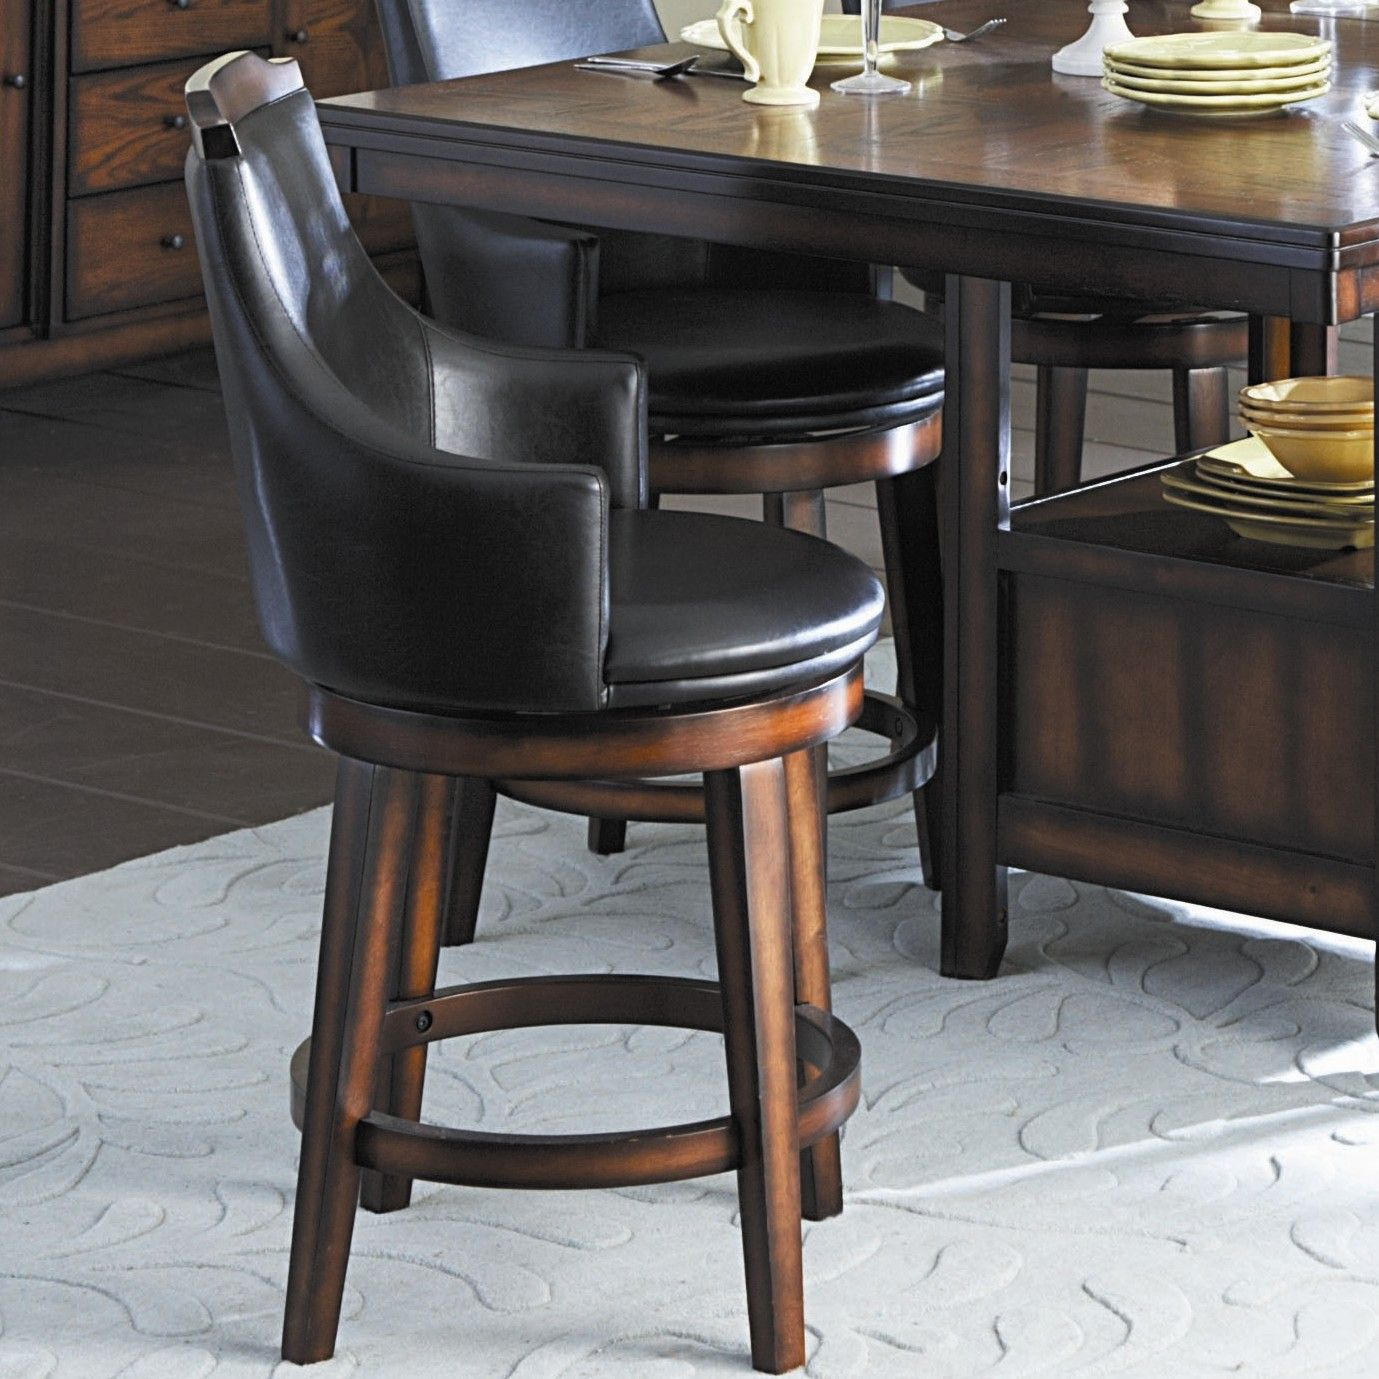 Incredible Leather And Wooden Captain Chair Bar Stools Swivel Bar Pdpeps Interior Chair Design Pdpepsorg